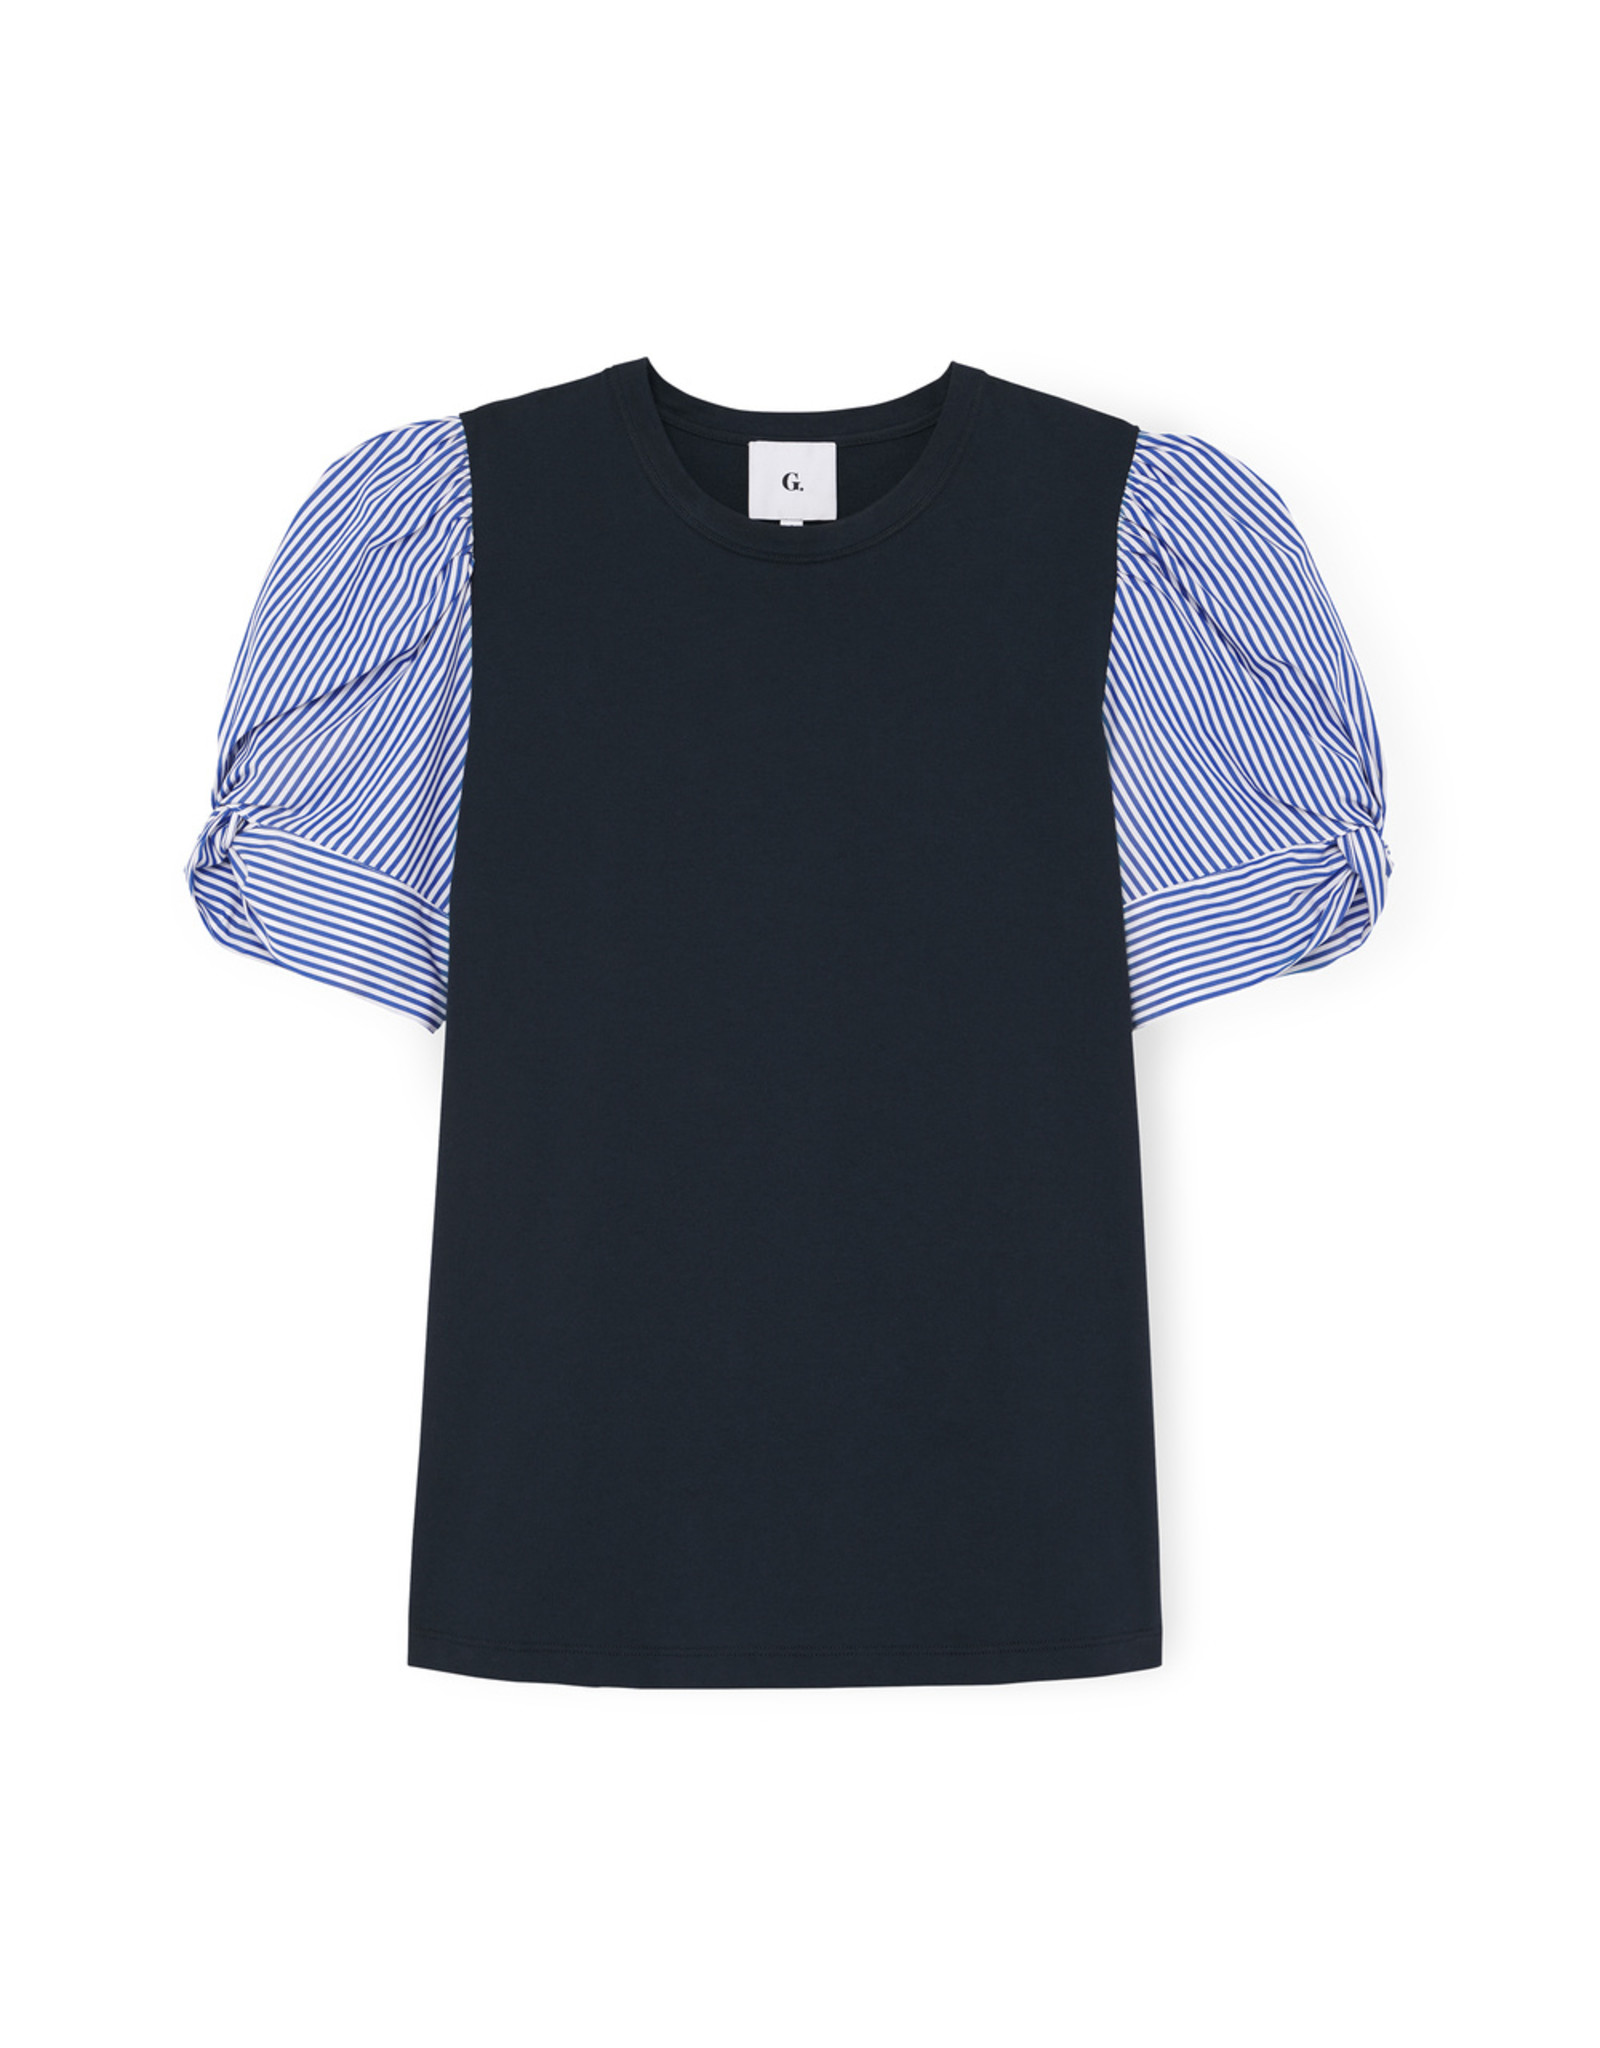 G. Label G. Label Justine Puff Sleeve T-Shirt (Size: 6, Color: Navy/Stripe)